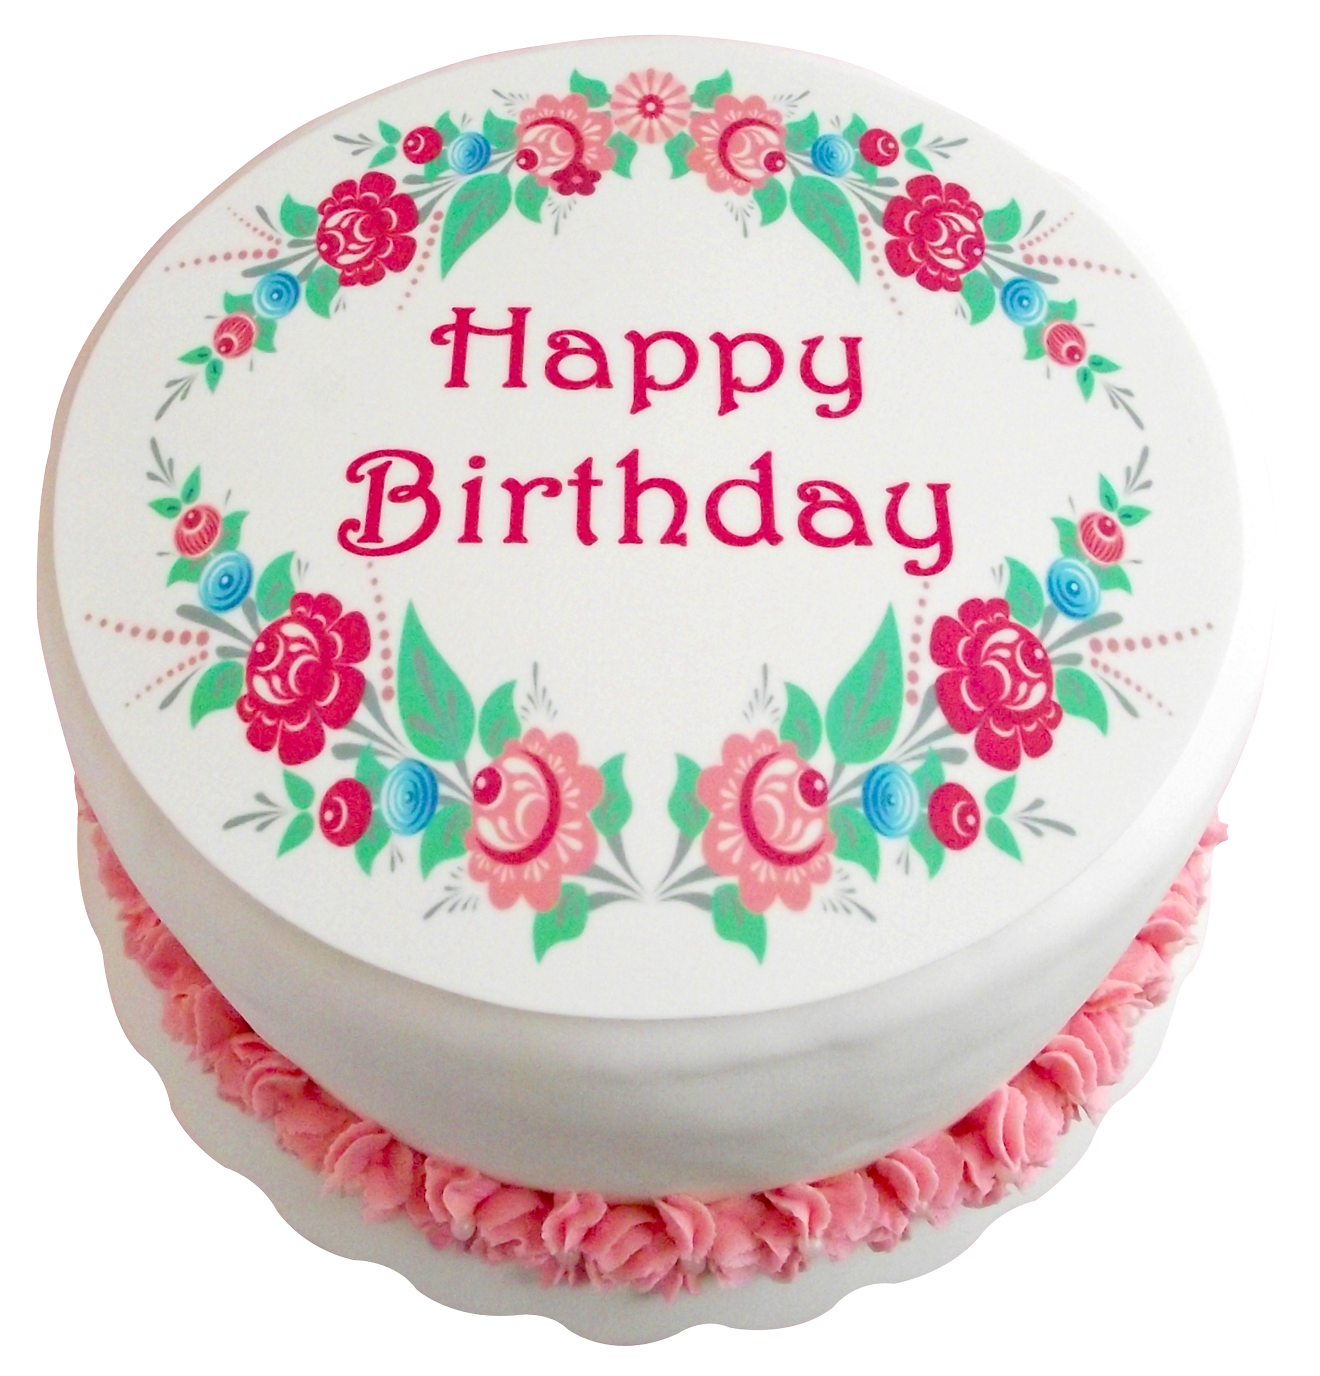 Birthday Cake Png Transparent Image Pngpix